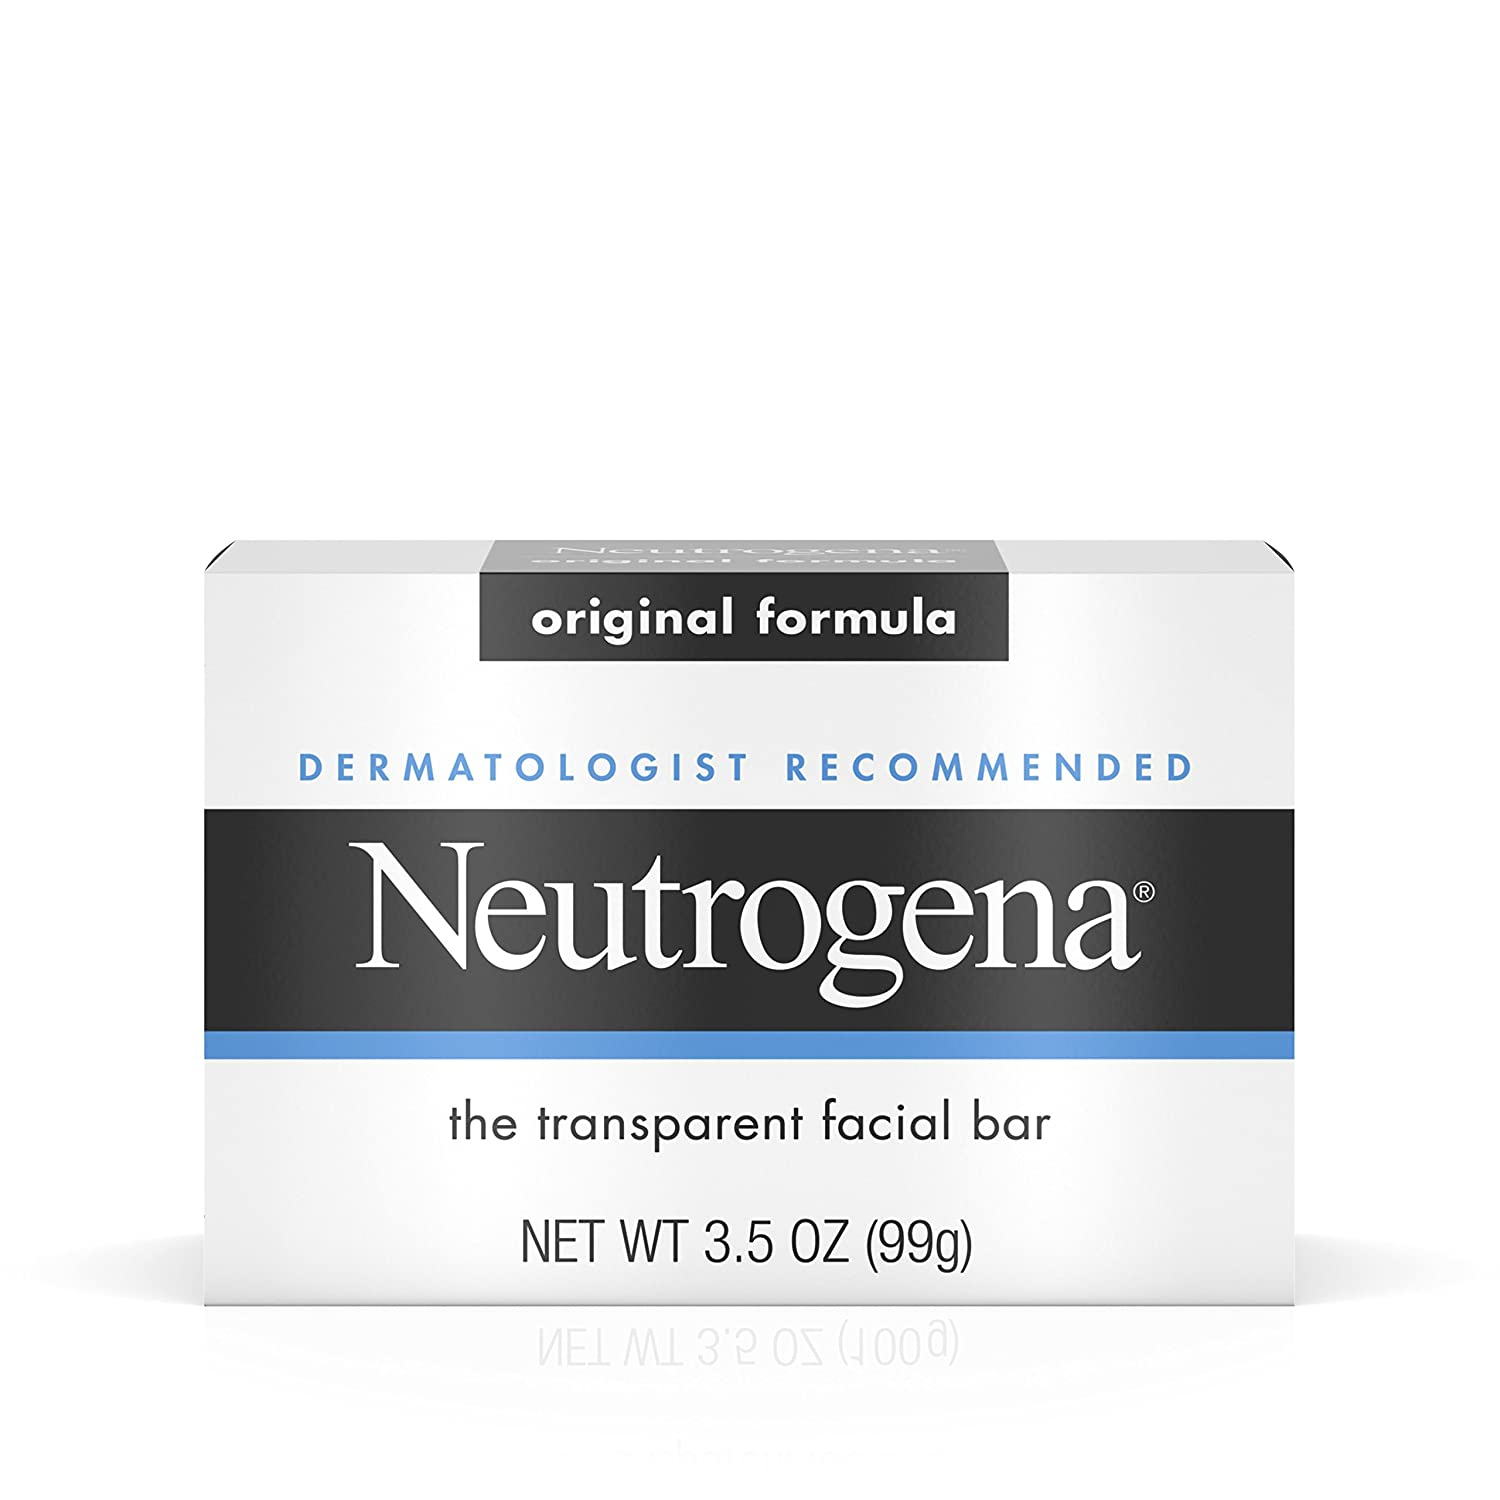 Neutrogena Transparent Scented Facial Soap, Original Formula Soap - 3.5 Oz